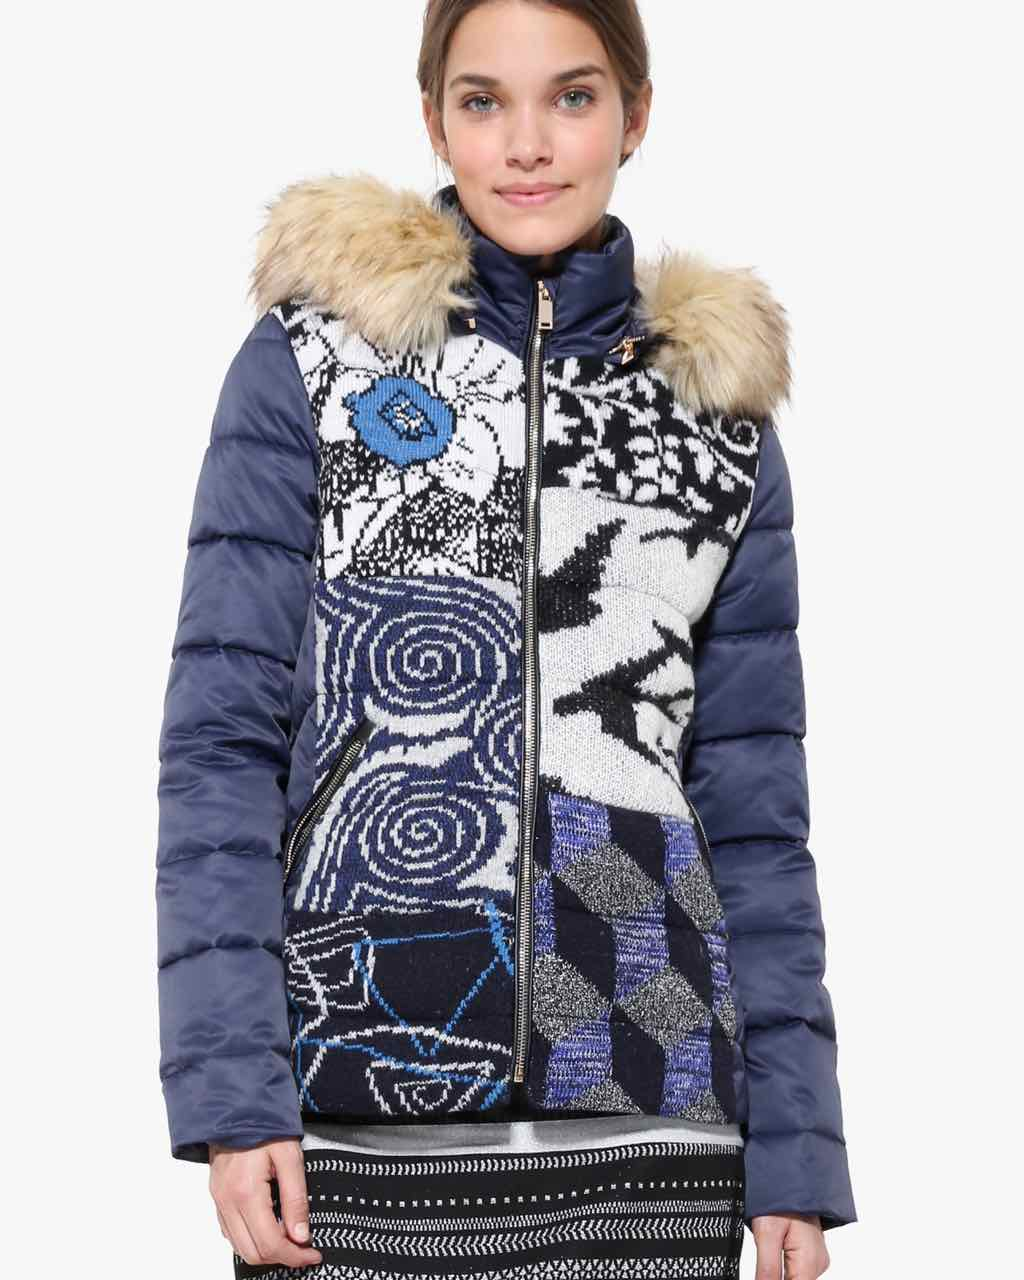 Desigual Blue Knit Jacket